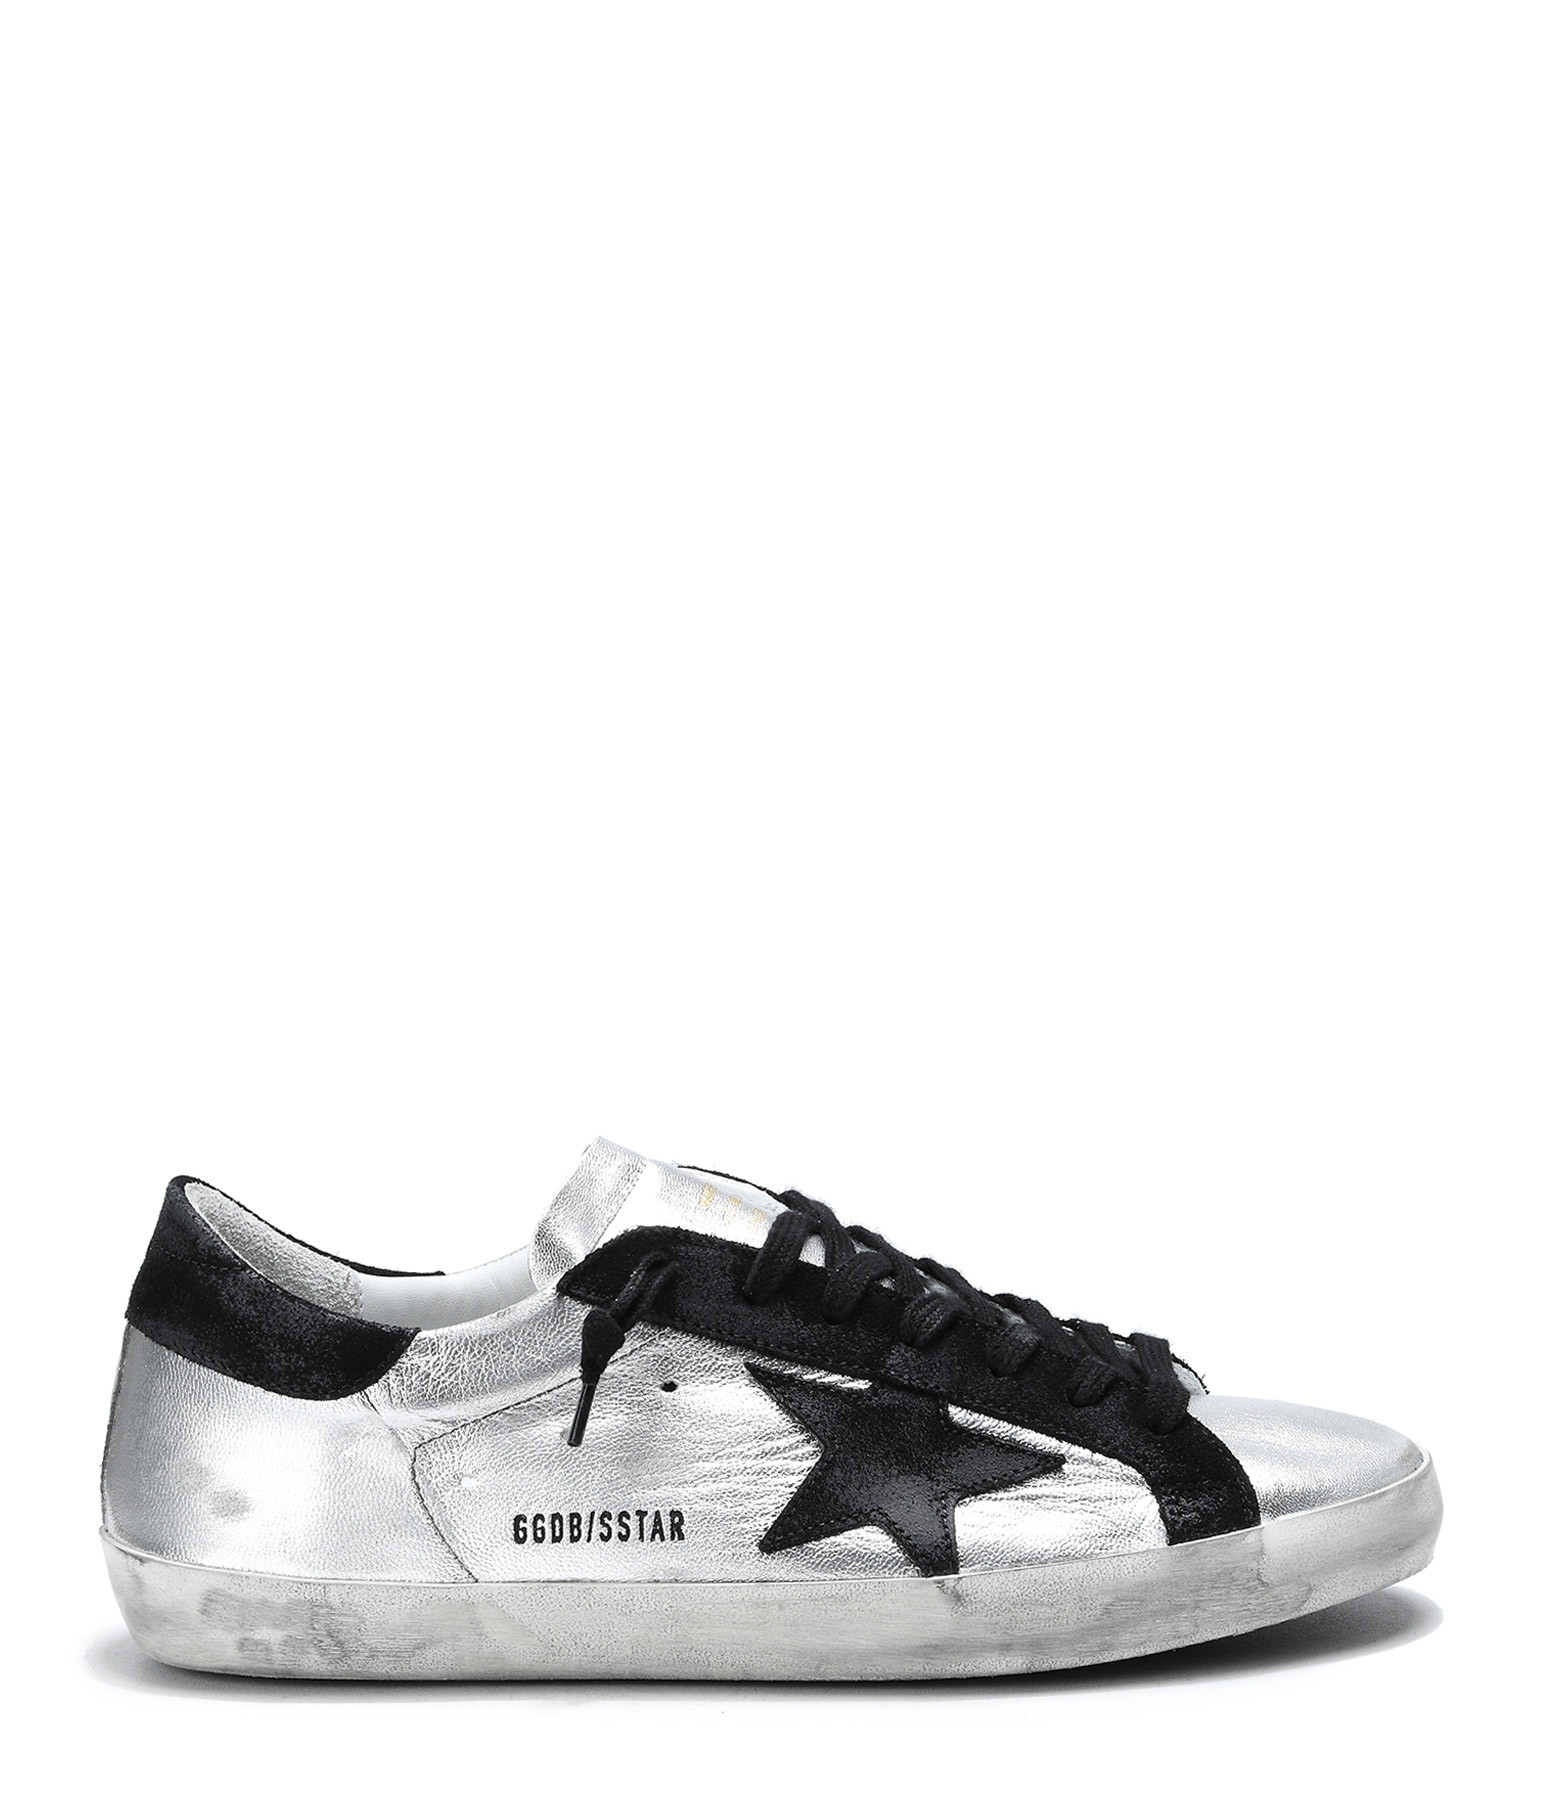 3b540d9f758c05 Sneakers Superstar Homme Cuir Silver Black Leather - GOLDEN GOOSE